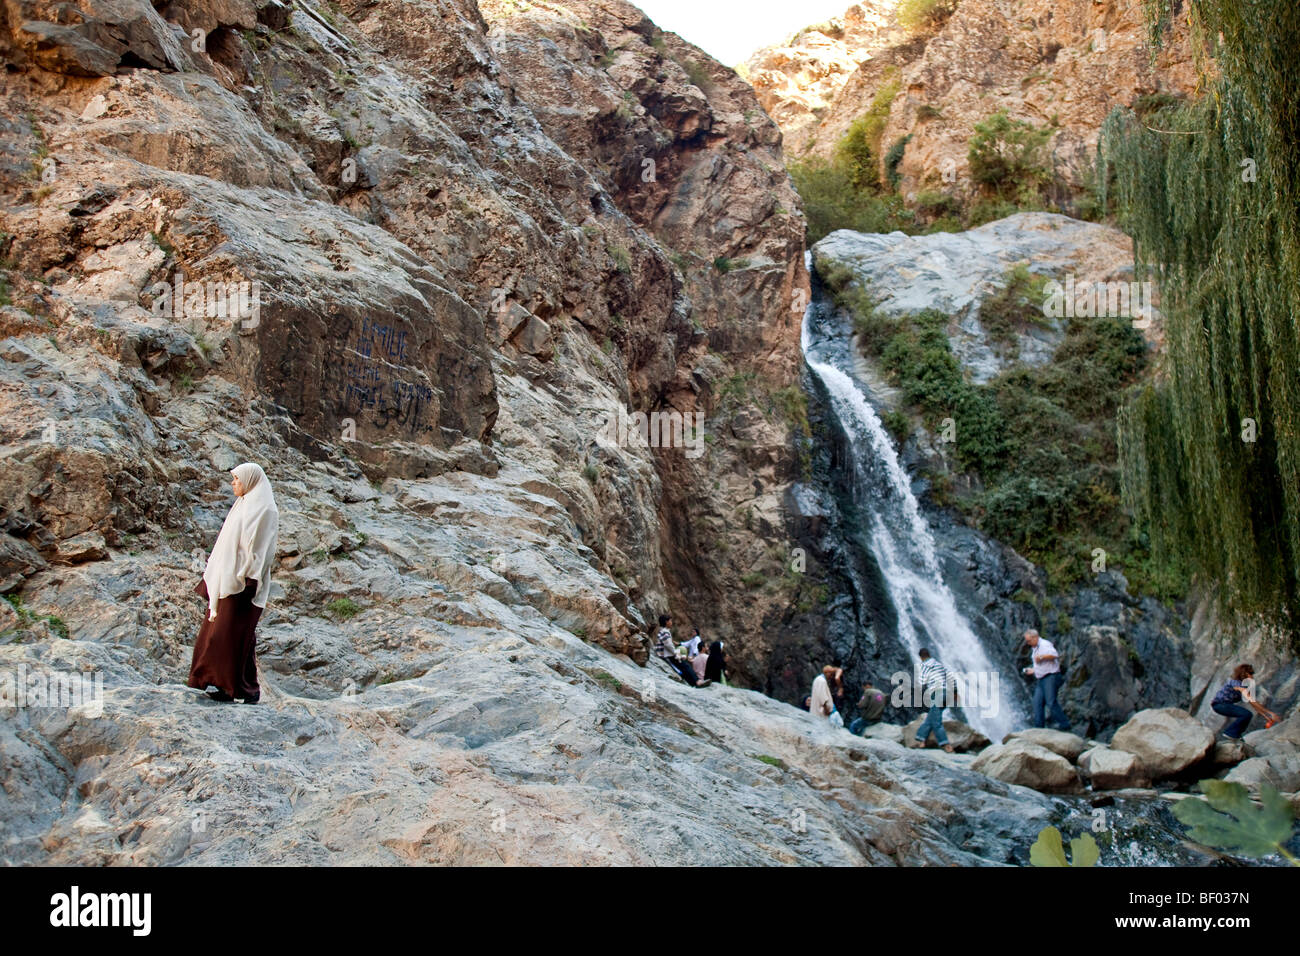 Tourists visiting waterfall in Setti Fatma berber village in Ourika valley, high Atlas mountains , Morocco. - Stock Image